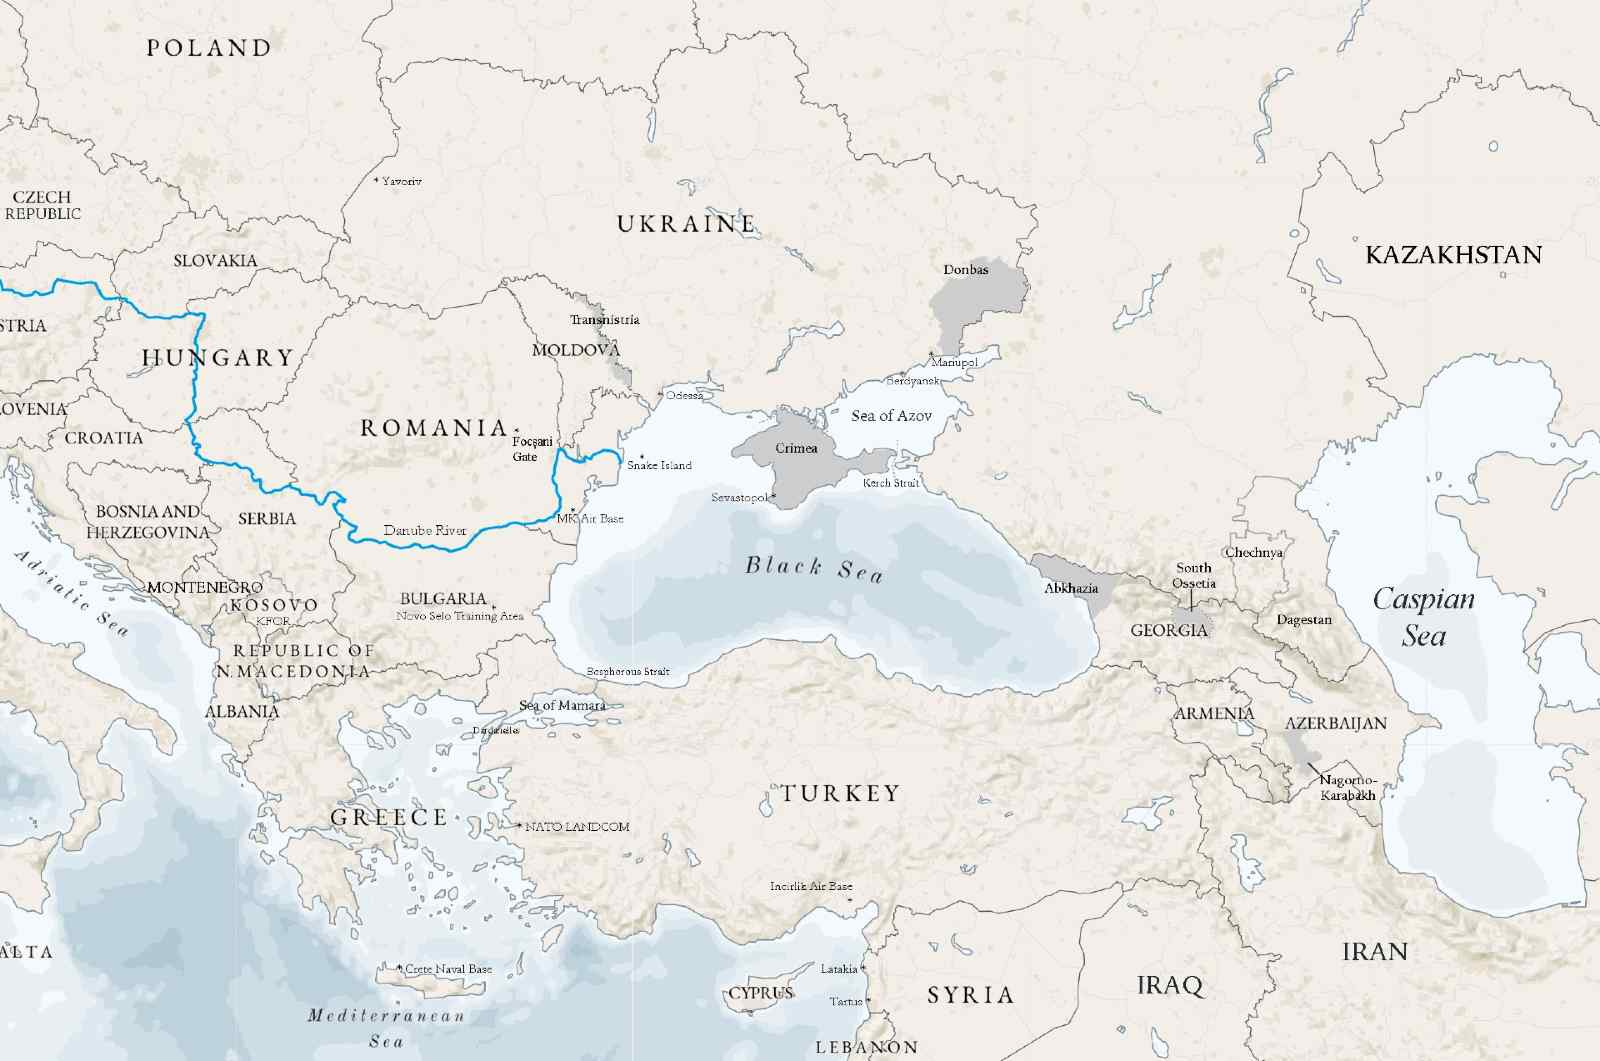 Adapted in 2020 from © Mapbox and © OpenStreetMap. Improve this map.